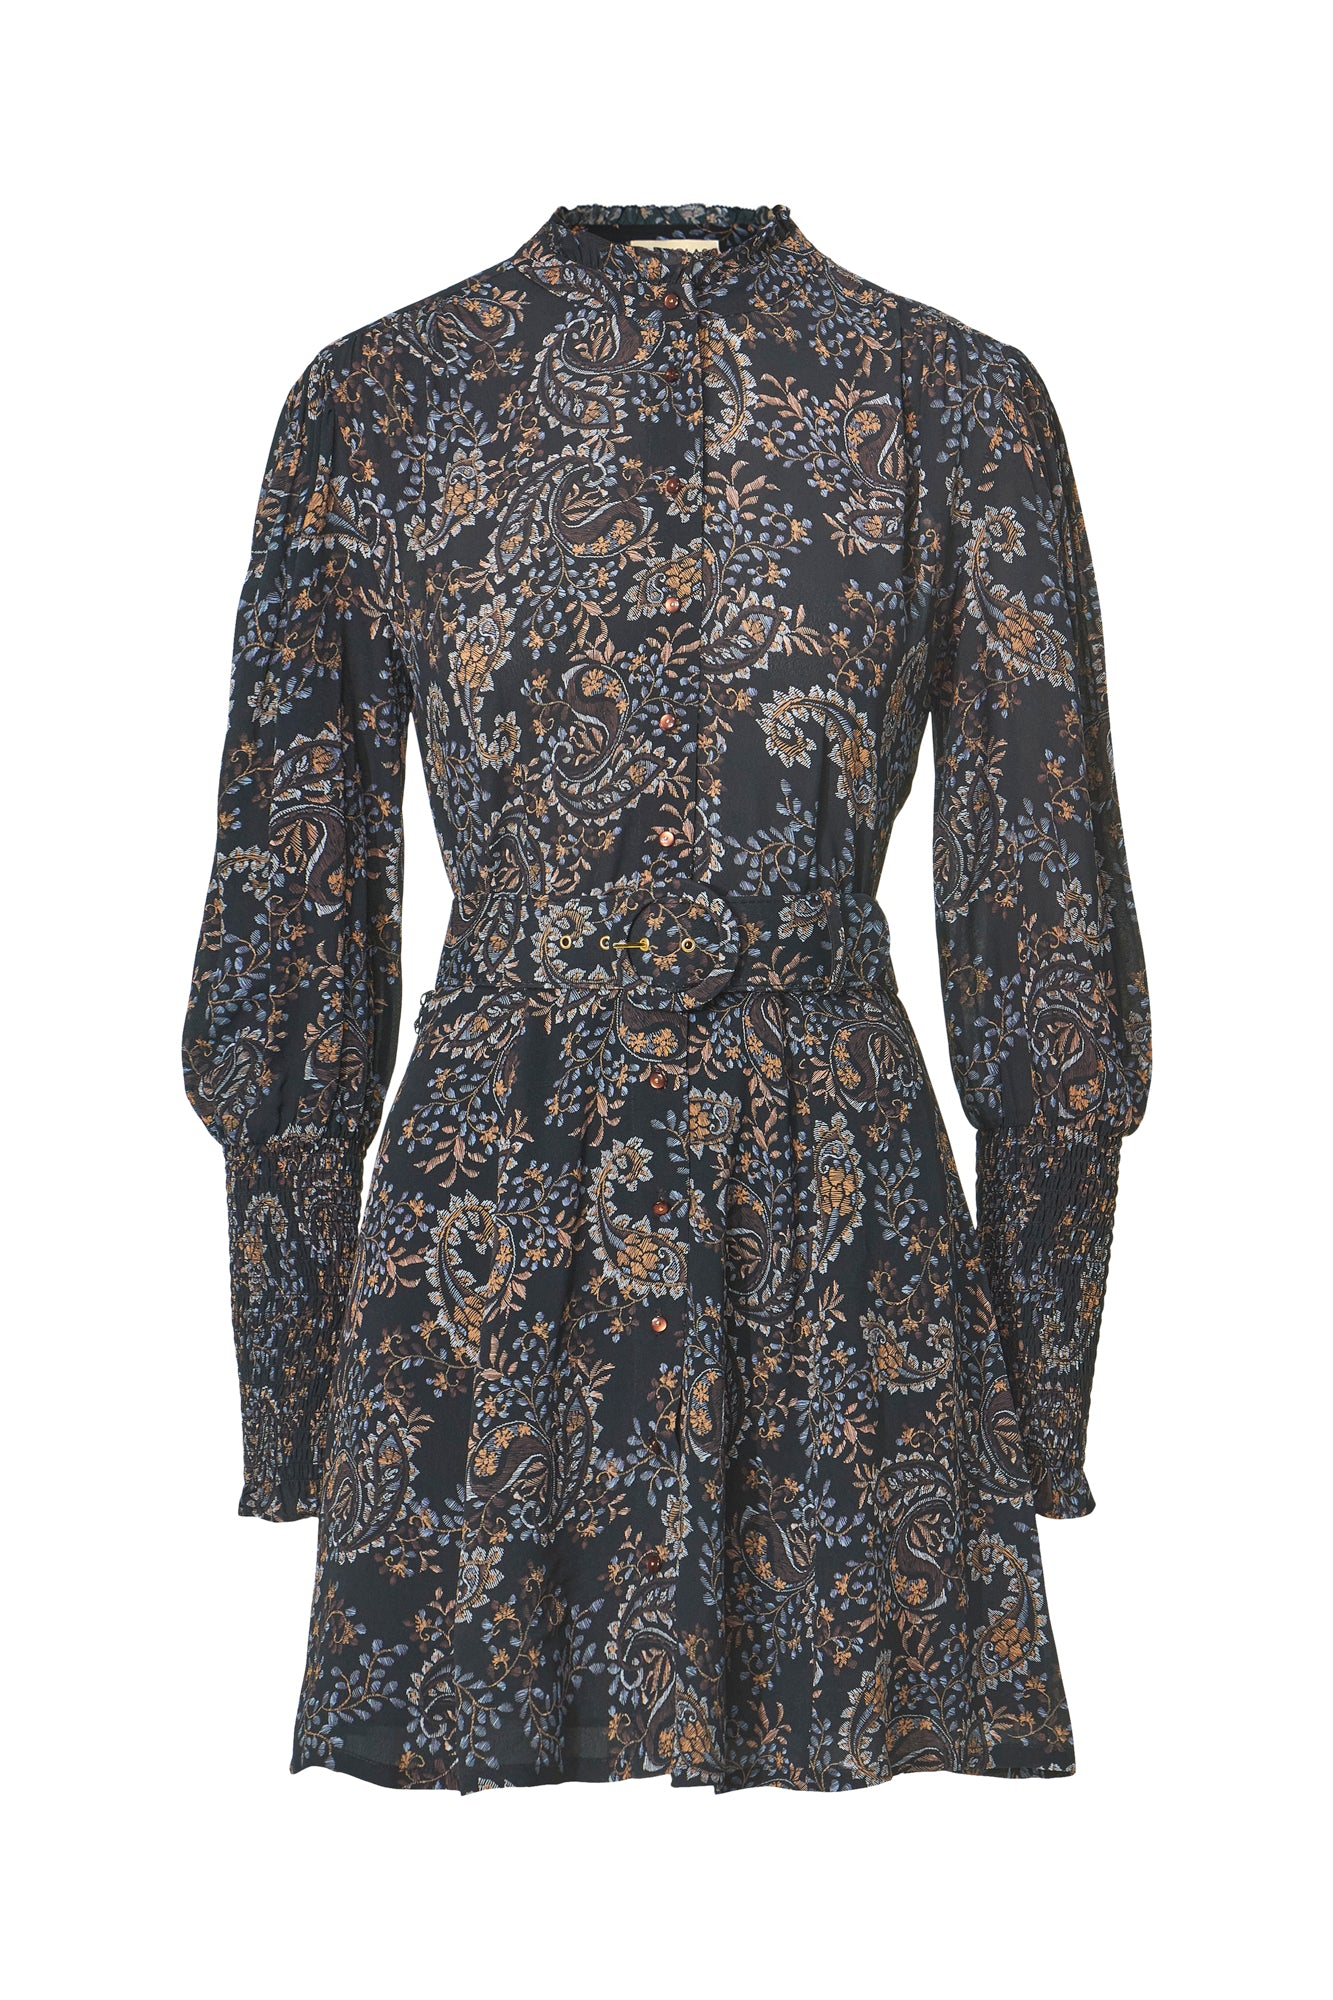 Agadir Dress - Etched Paisley Black